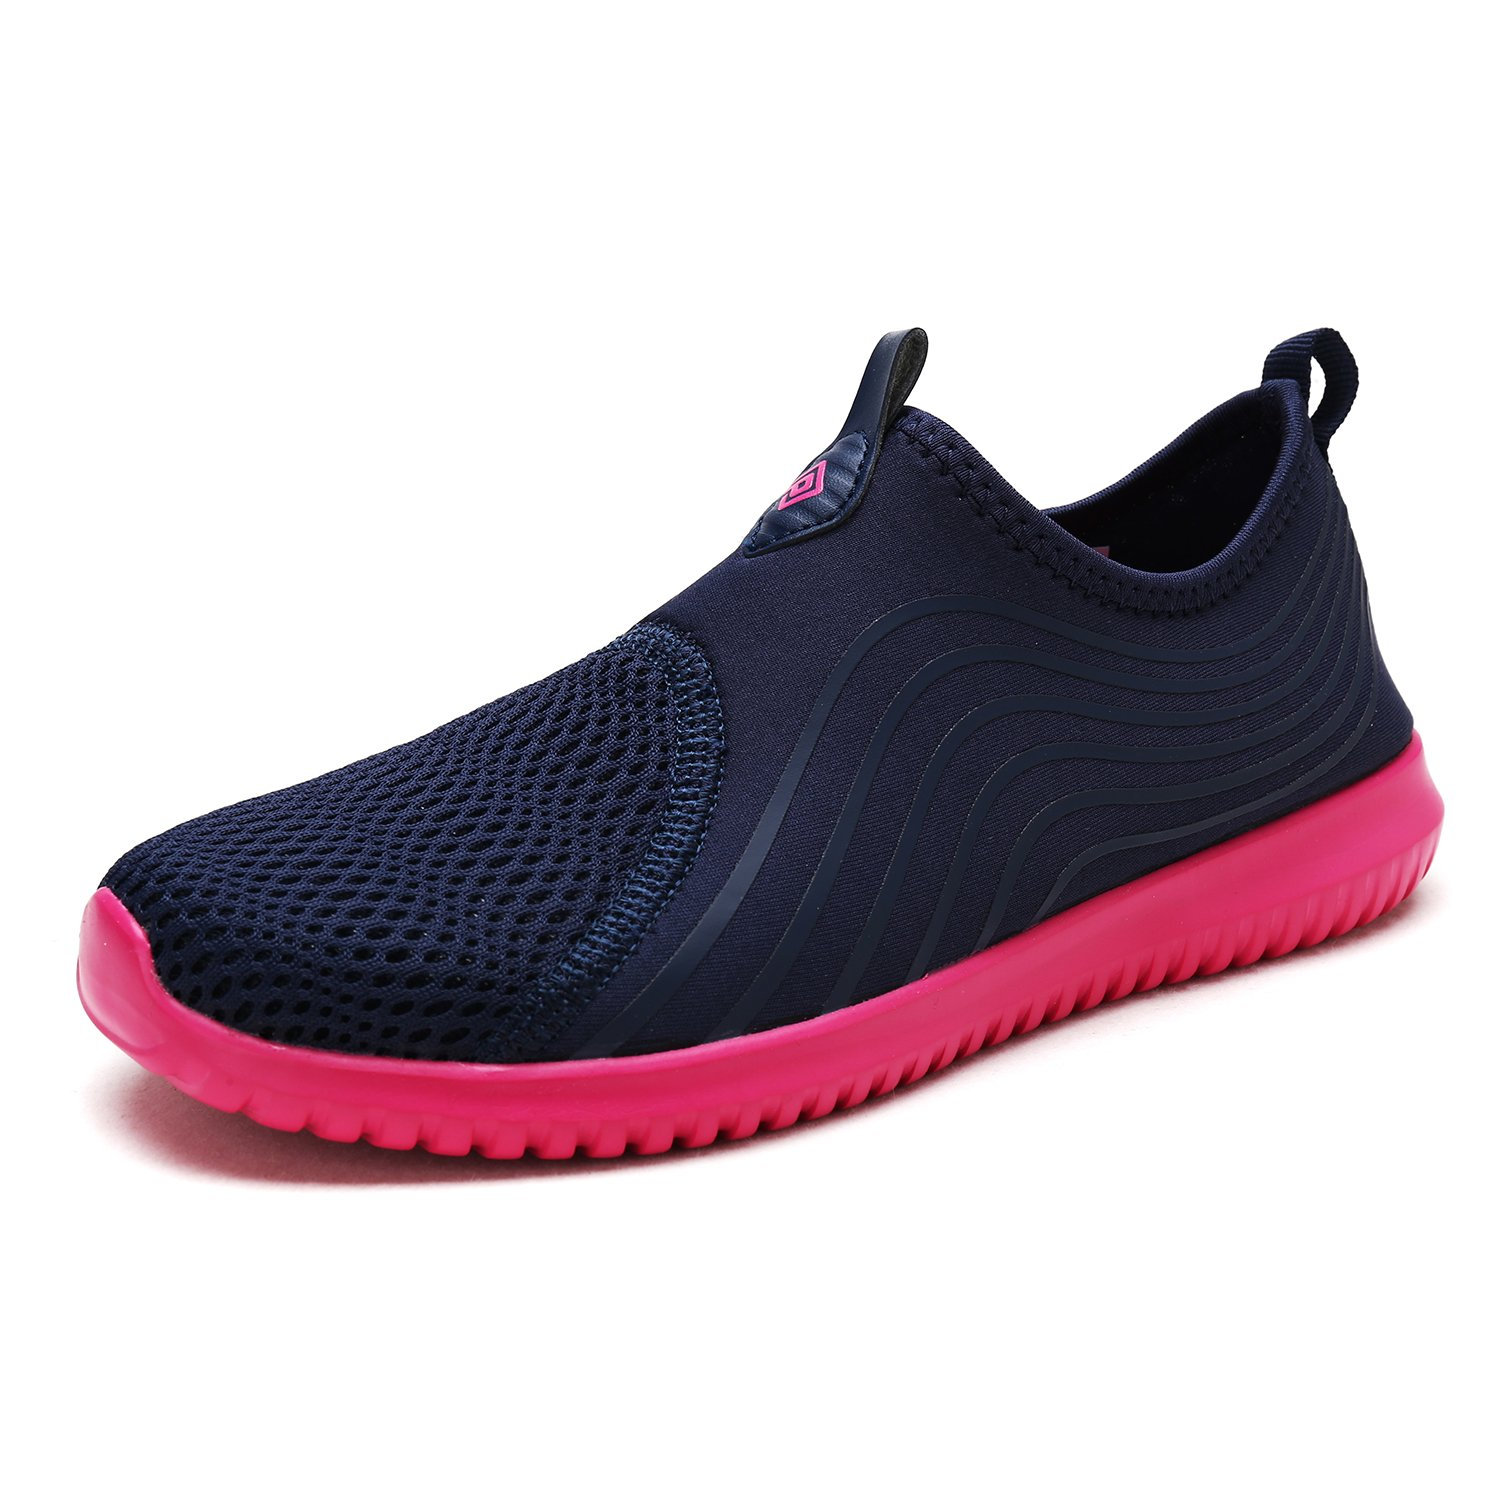 DREAM PAIRS Women's Quick-Dry Water Shoes Sports Walking Casual Sneakers